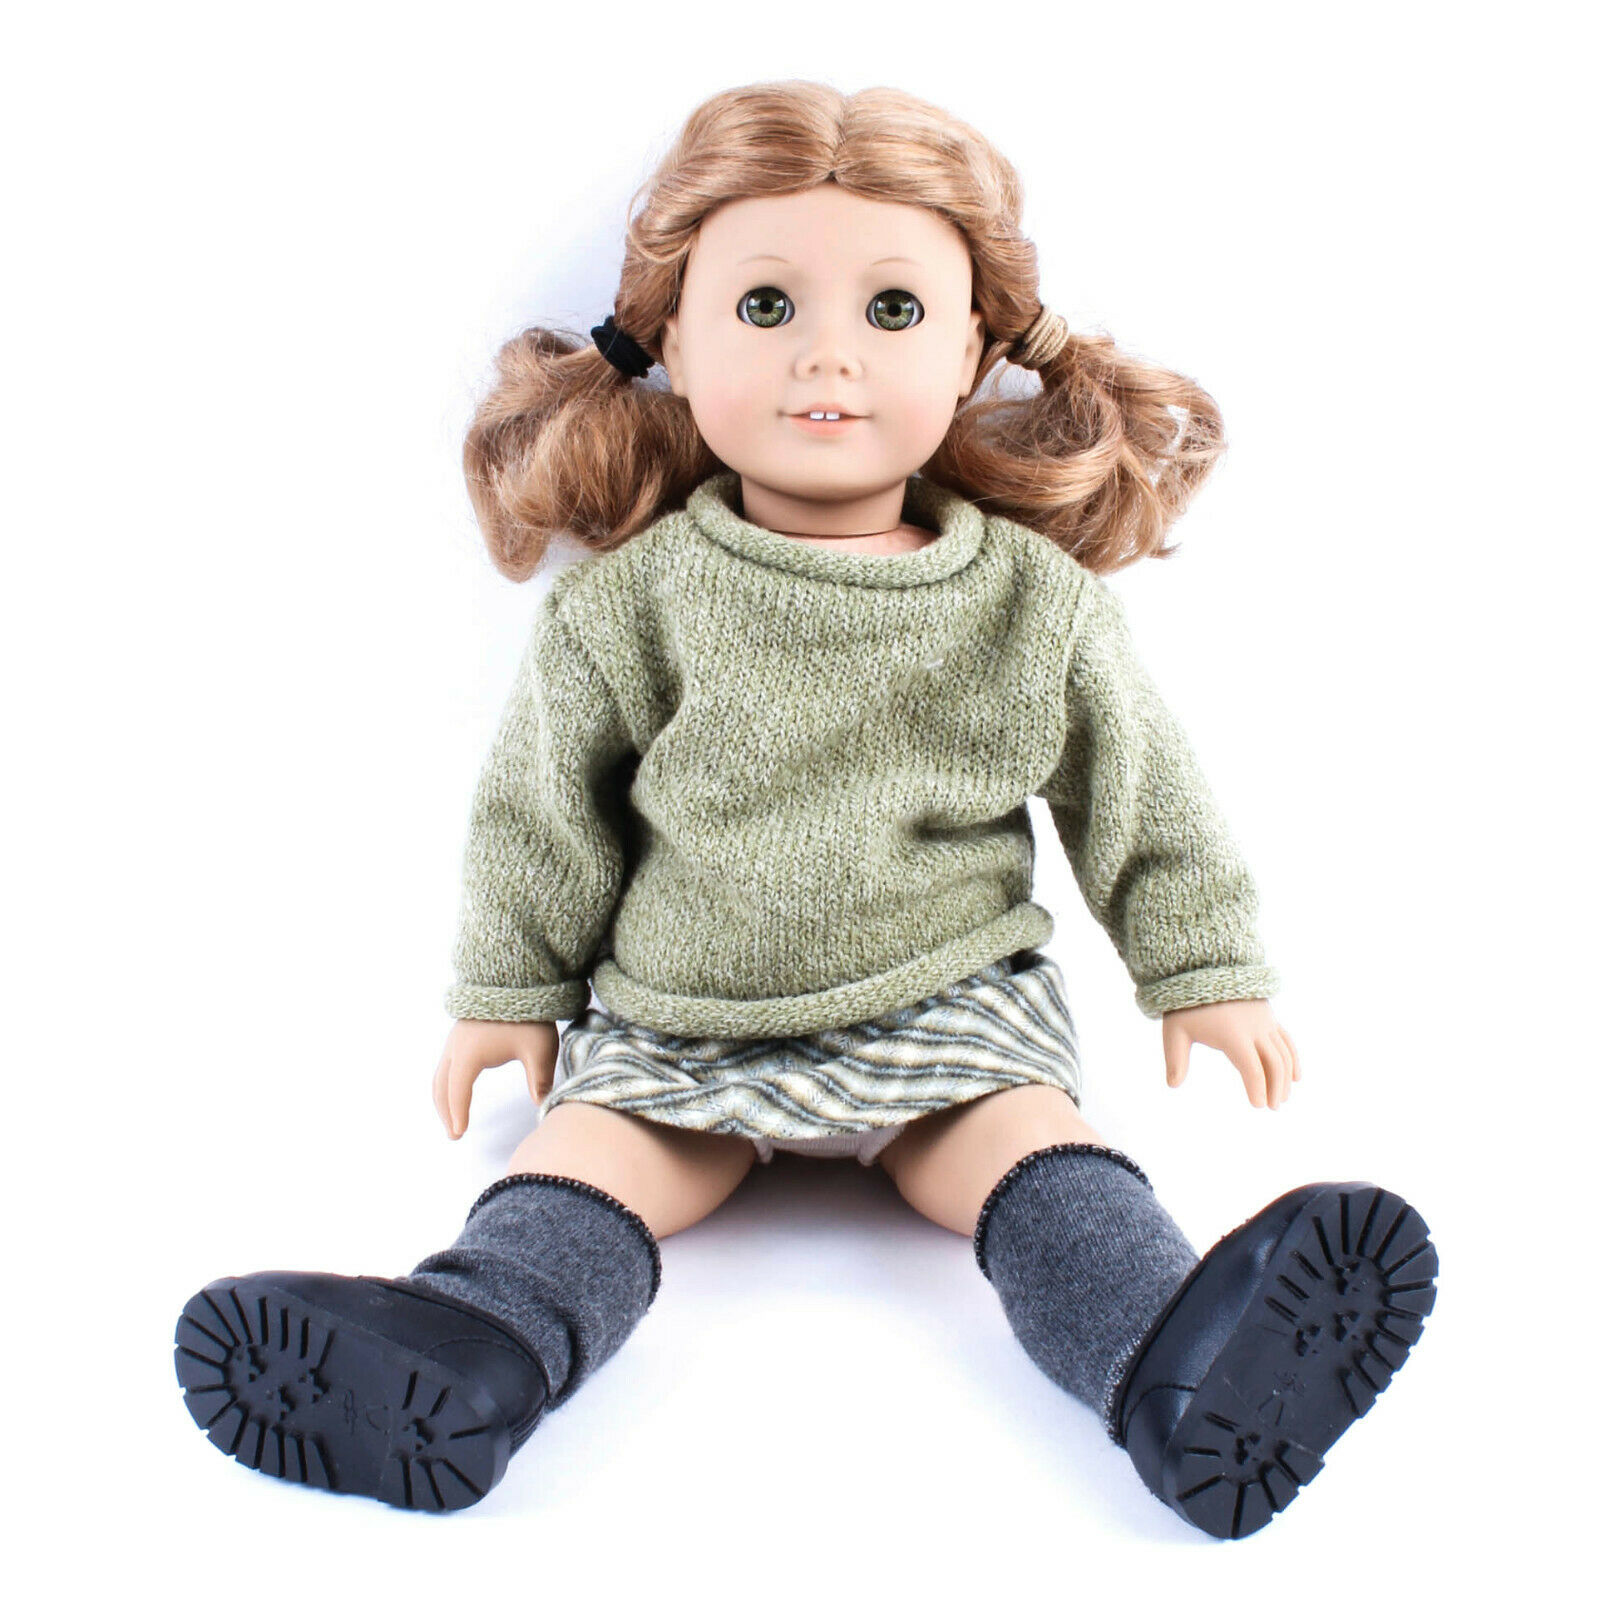 American Girl Dolls of Today - Just Like You   21 - Retirot - Perfect Plaid Outf